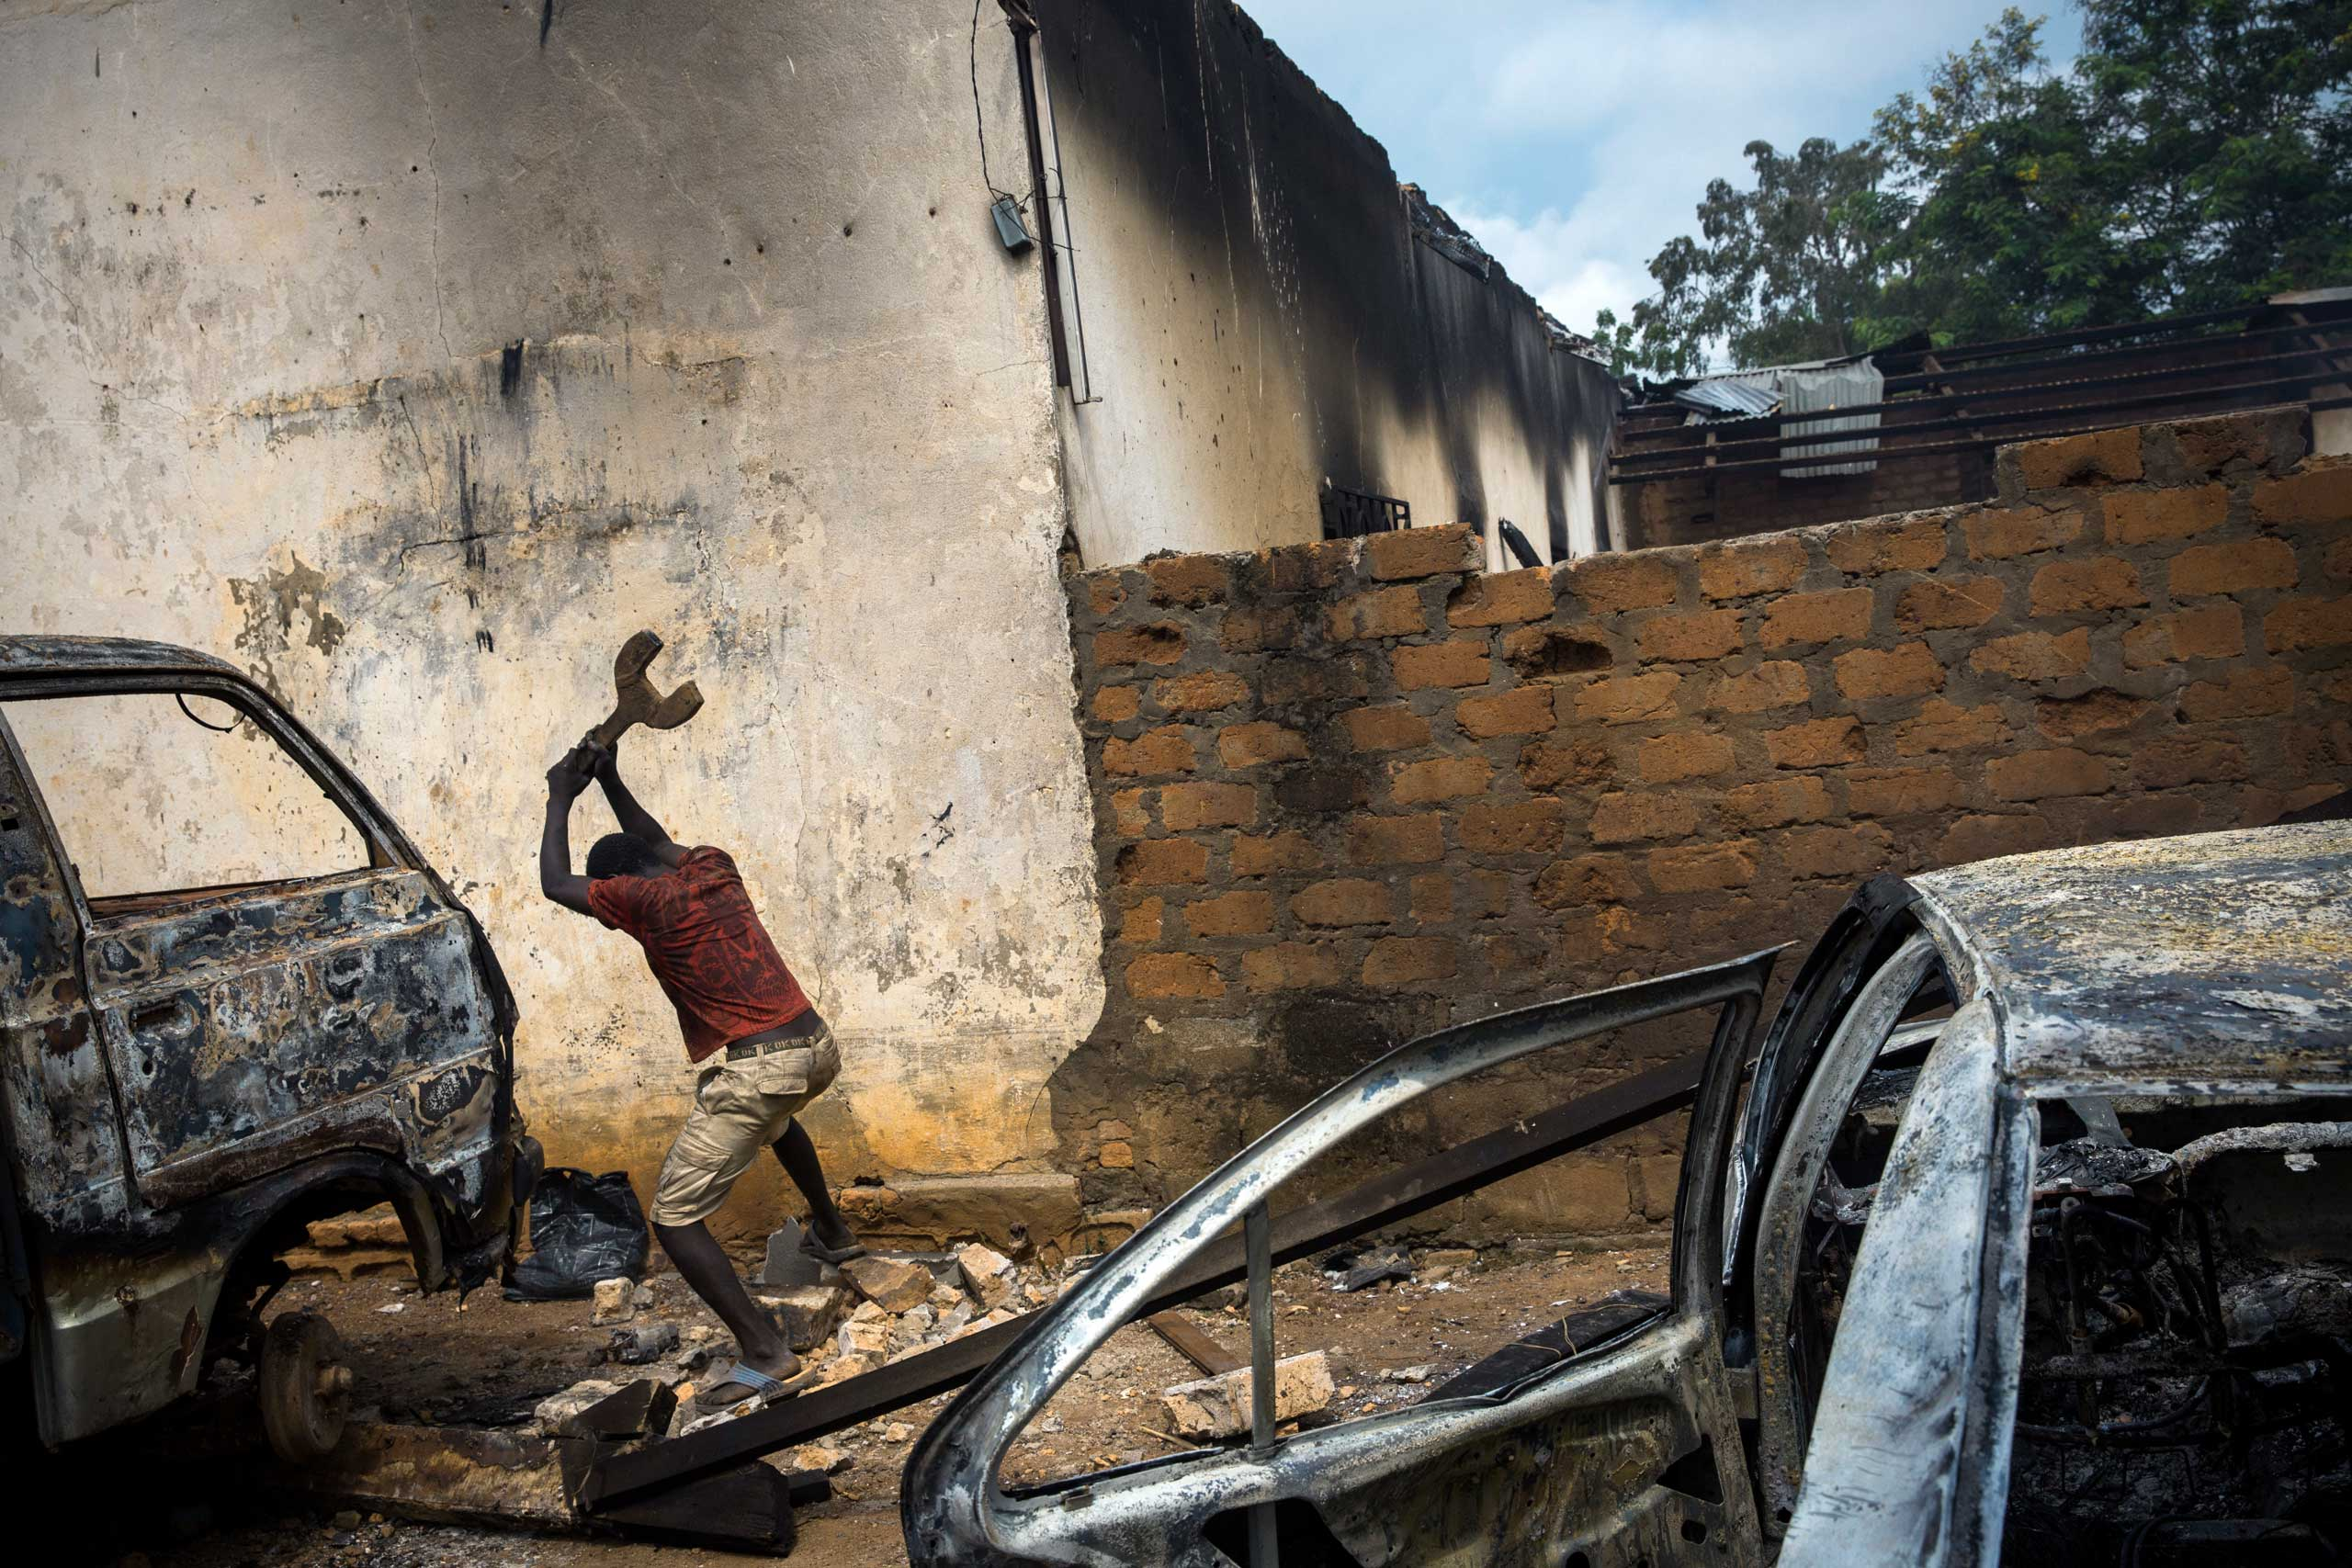 A Christian man destroys burnt out cars in rage, next to a looted mosque that had been set ablaze. Bangui, Central African Republic. Dec. 10, 2013.